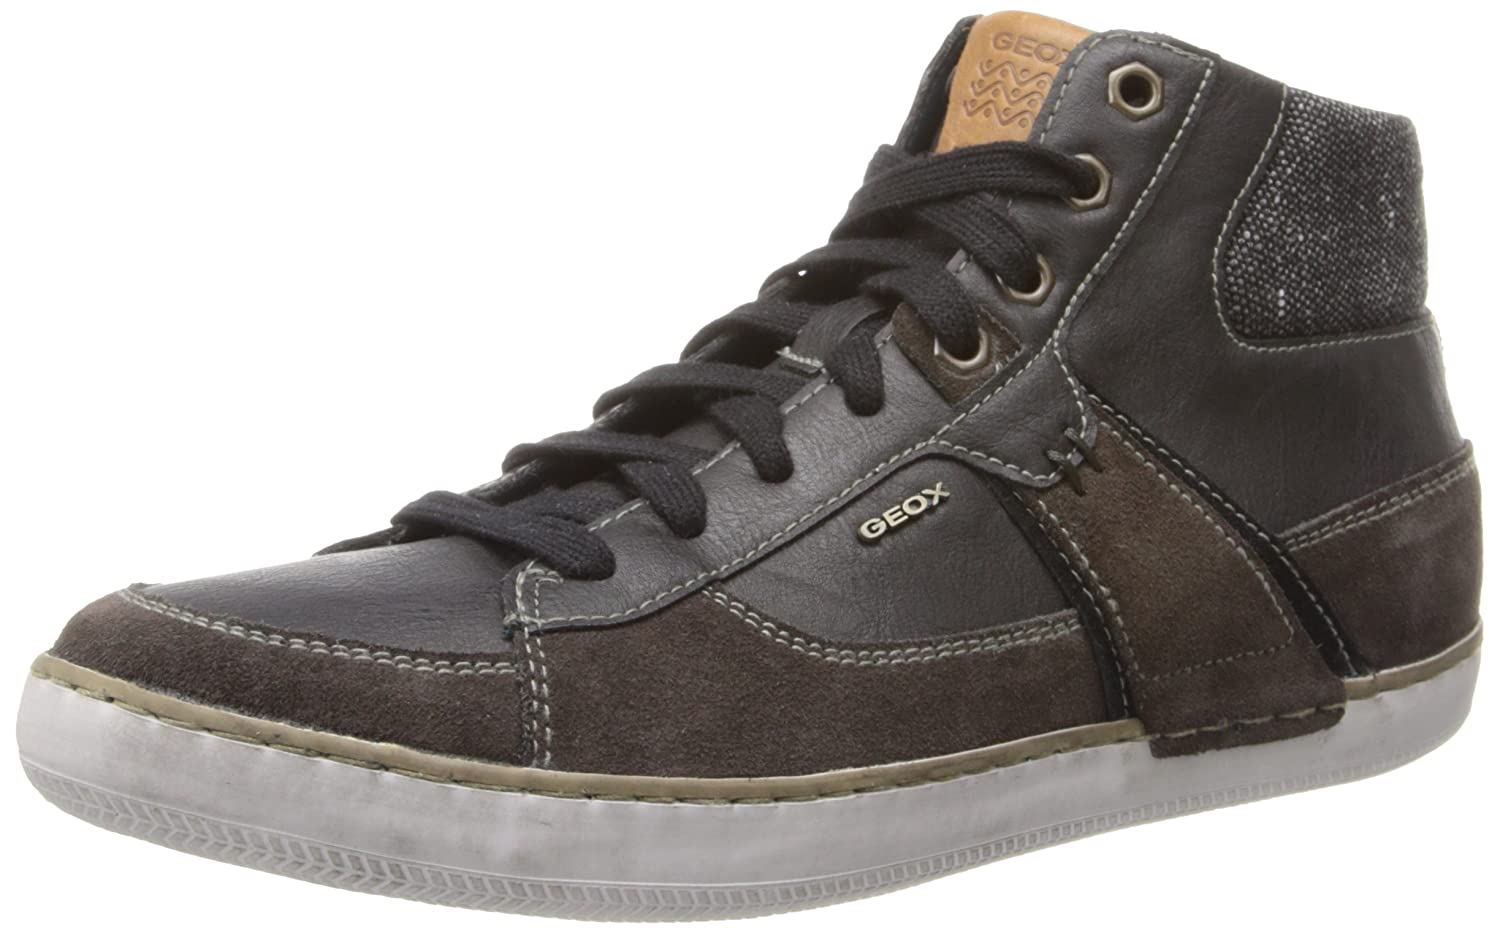 Geox Box Sneakers Basse Mud A Basso Prezzo: Geox On Line